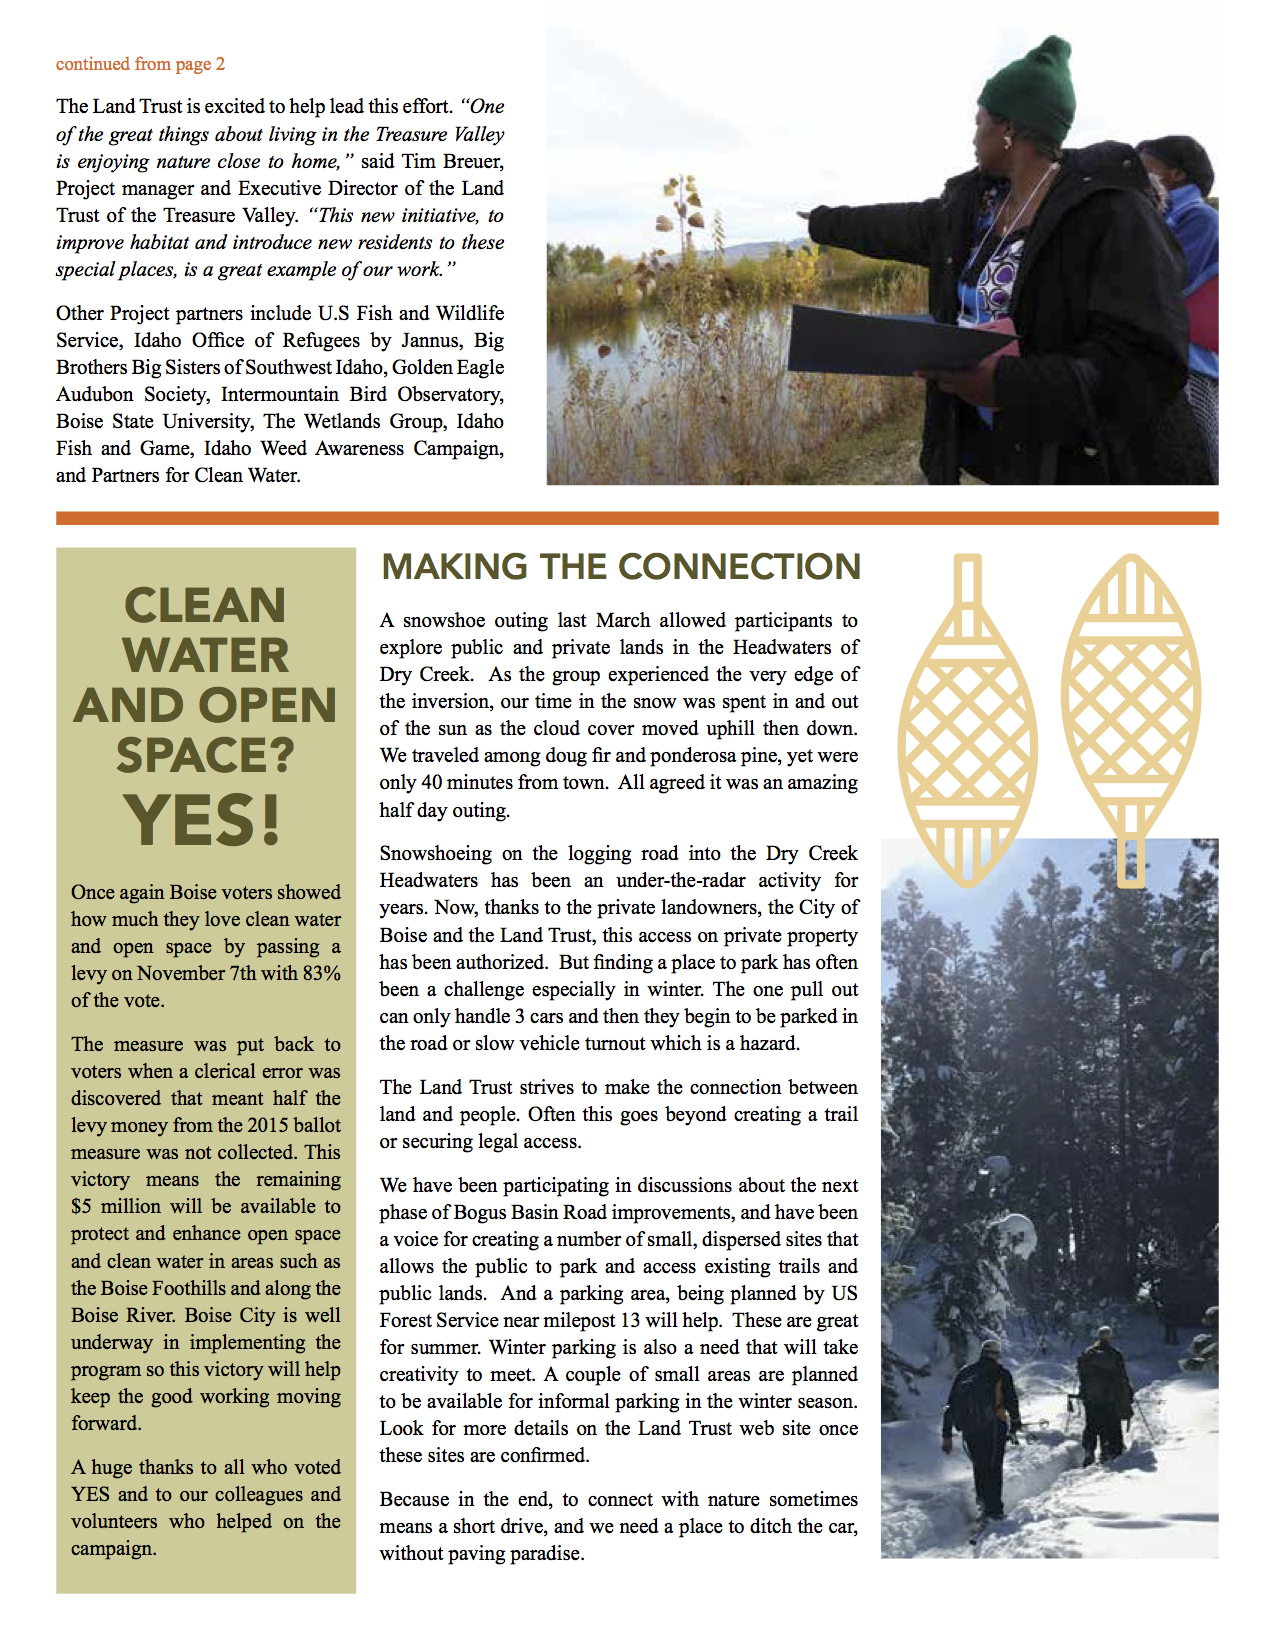 Land Trust_Fall 2017_Newsletter_page2.png